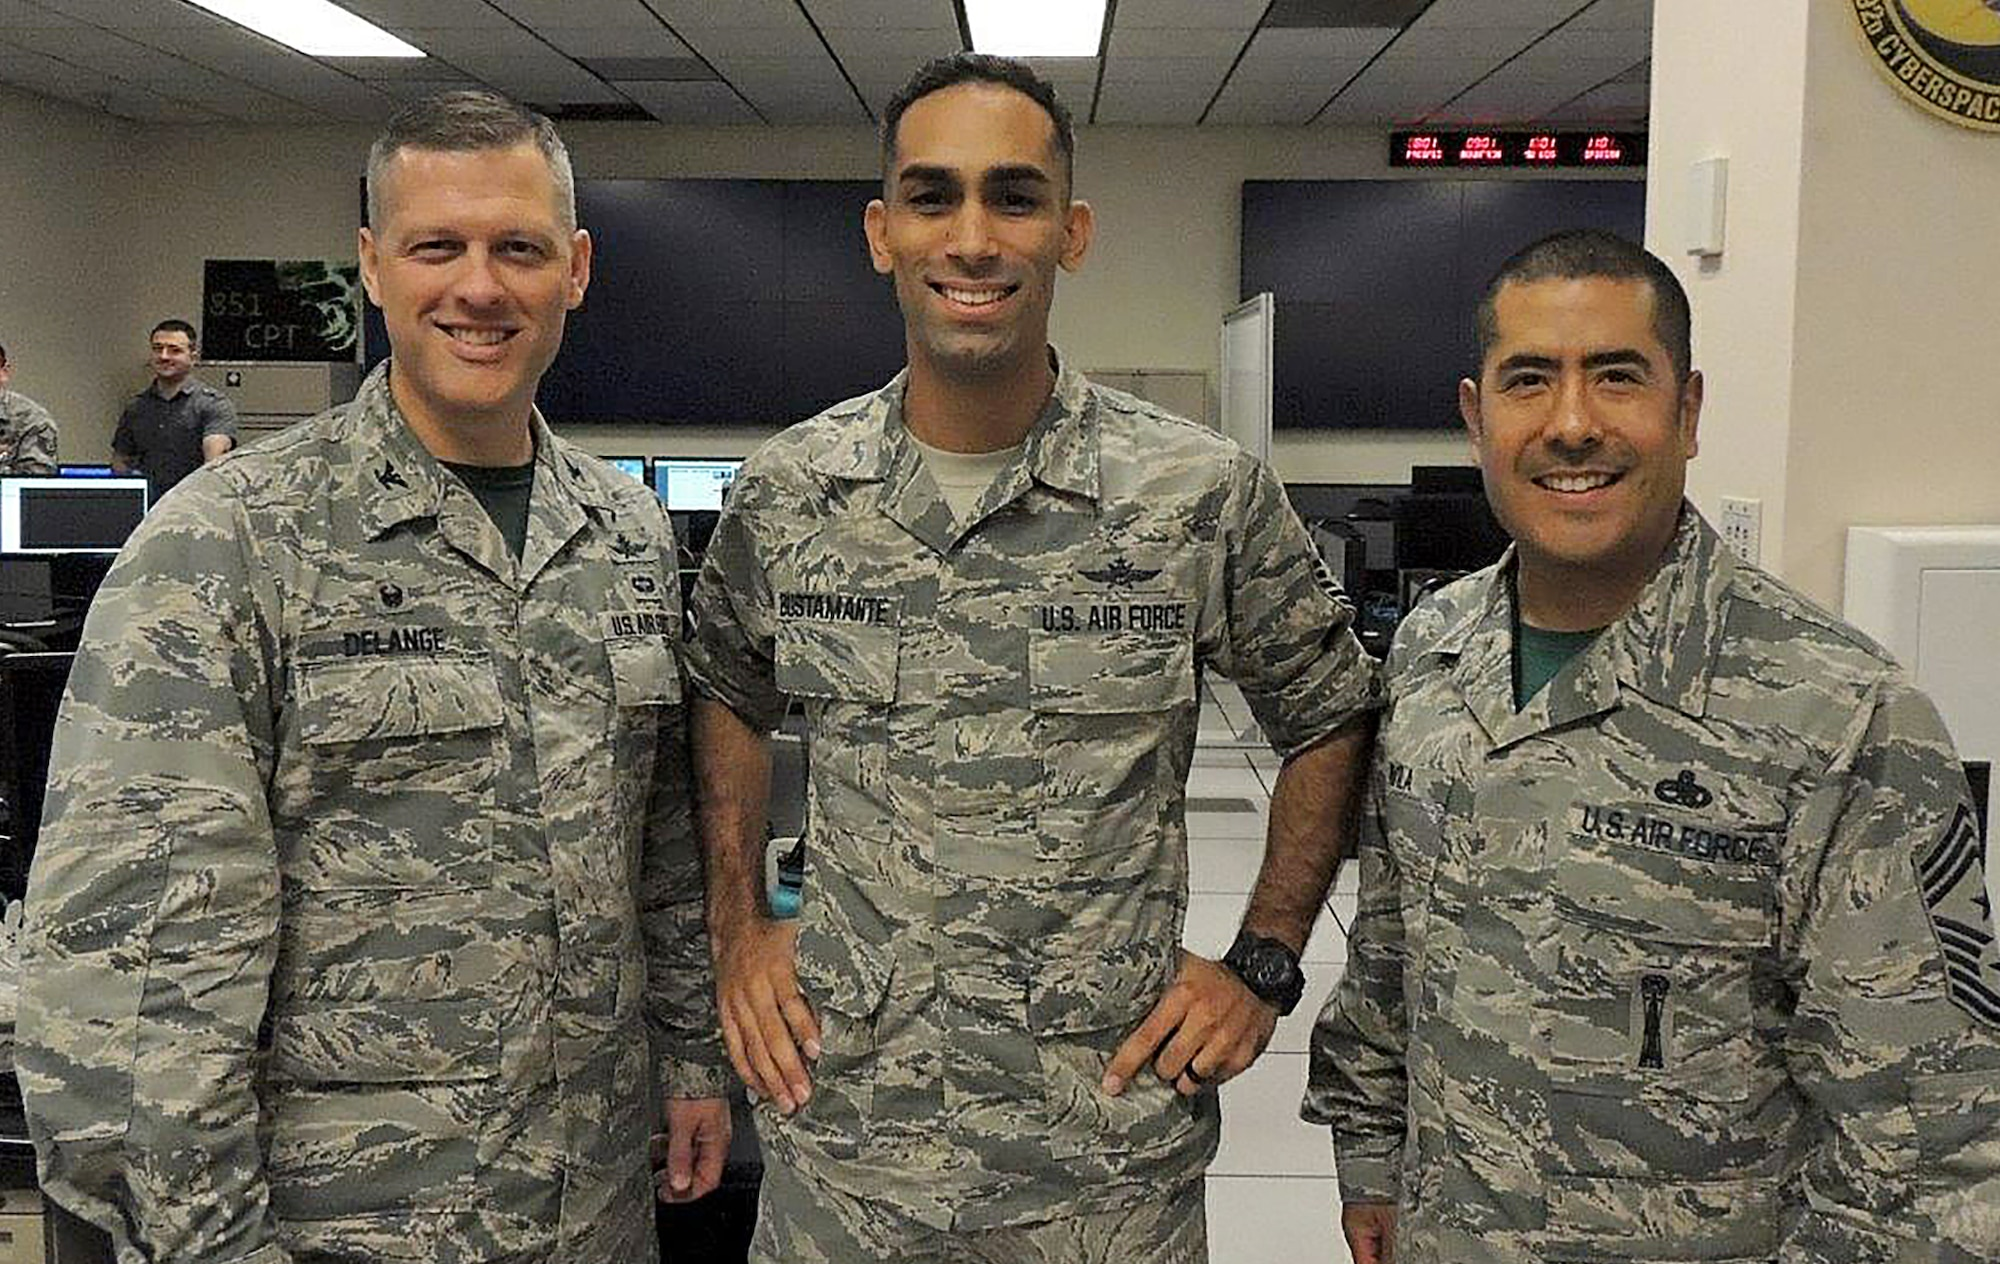 Col. Eric Delange, 688th Cyberspace Wing Commander (left), and Chief Master Sgt. Emilio Avila, 688th CW command chief (right), congratulate Master Sgt. Anthony Bustamante, 92nd Cyberspace Operations Squadron flight chief, on being selected as one of the first Airmen to undergo direct appointment into the Air Force cyberspace officer corps. Direct appointment for cyberspace officers was authorized under the 2017 National Defense Authorization Act. The candidates' experience will be used to develop policies and procedures for future applicants. (Courtesy photo)